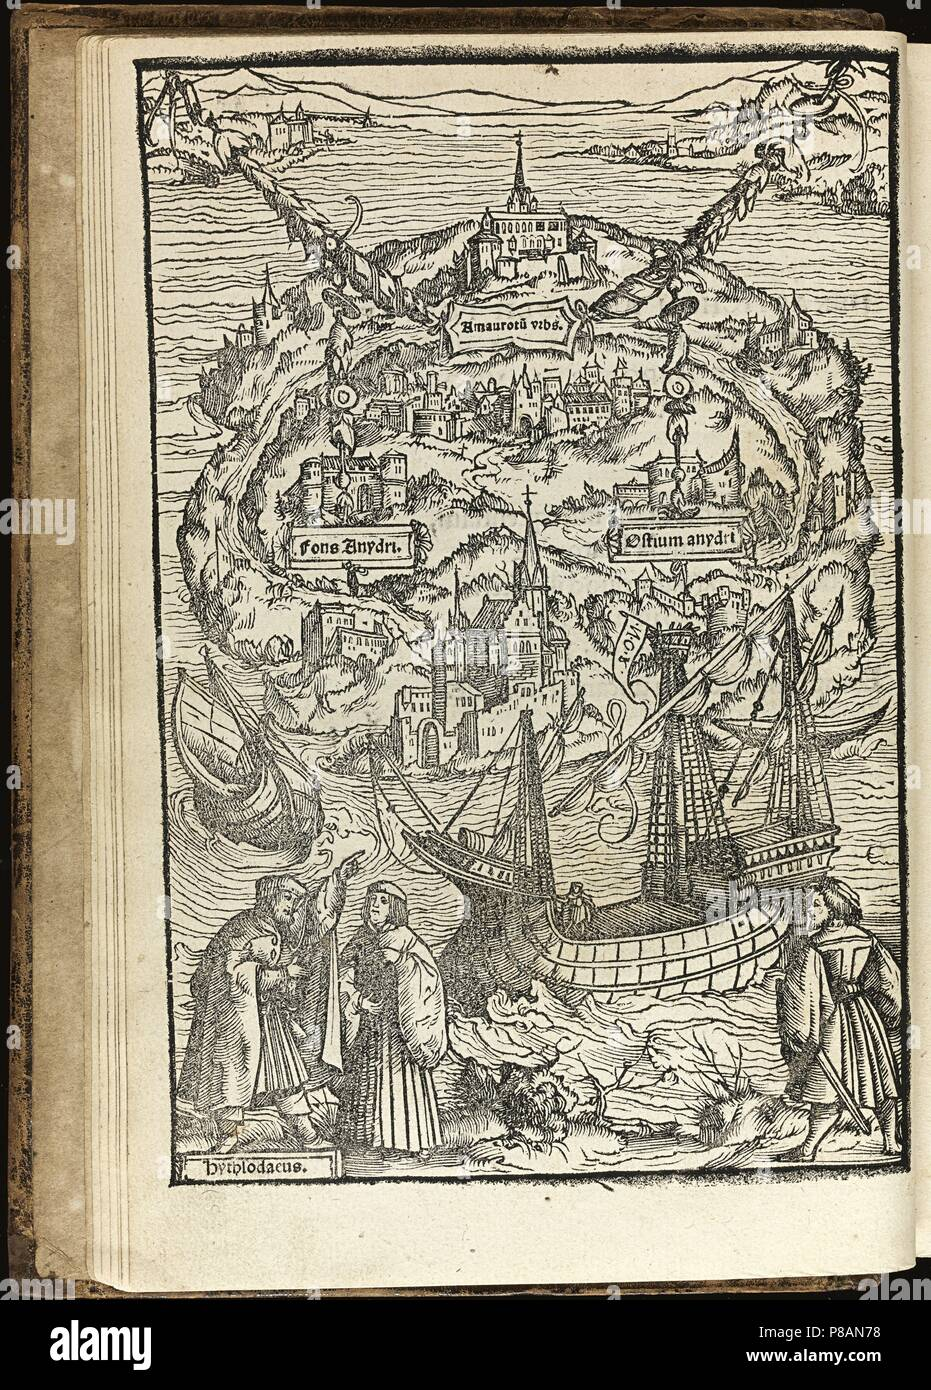 Utopia by Thomas More. Museum: PRIVATE COLLECTION. - Stock Image